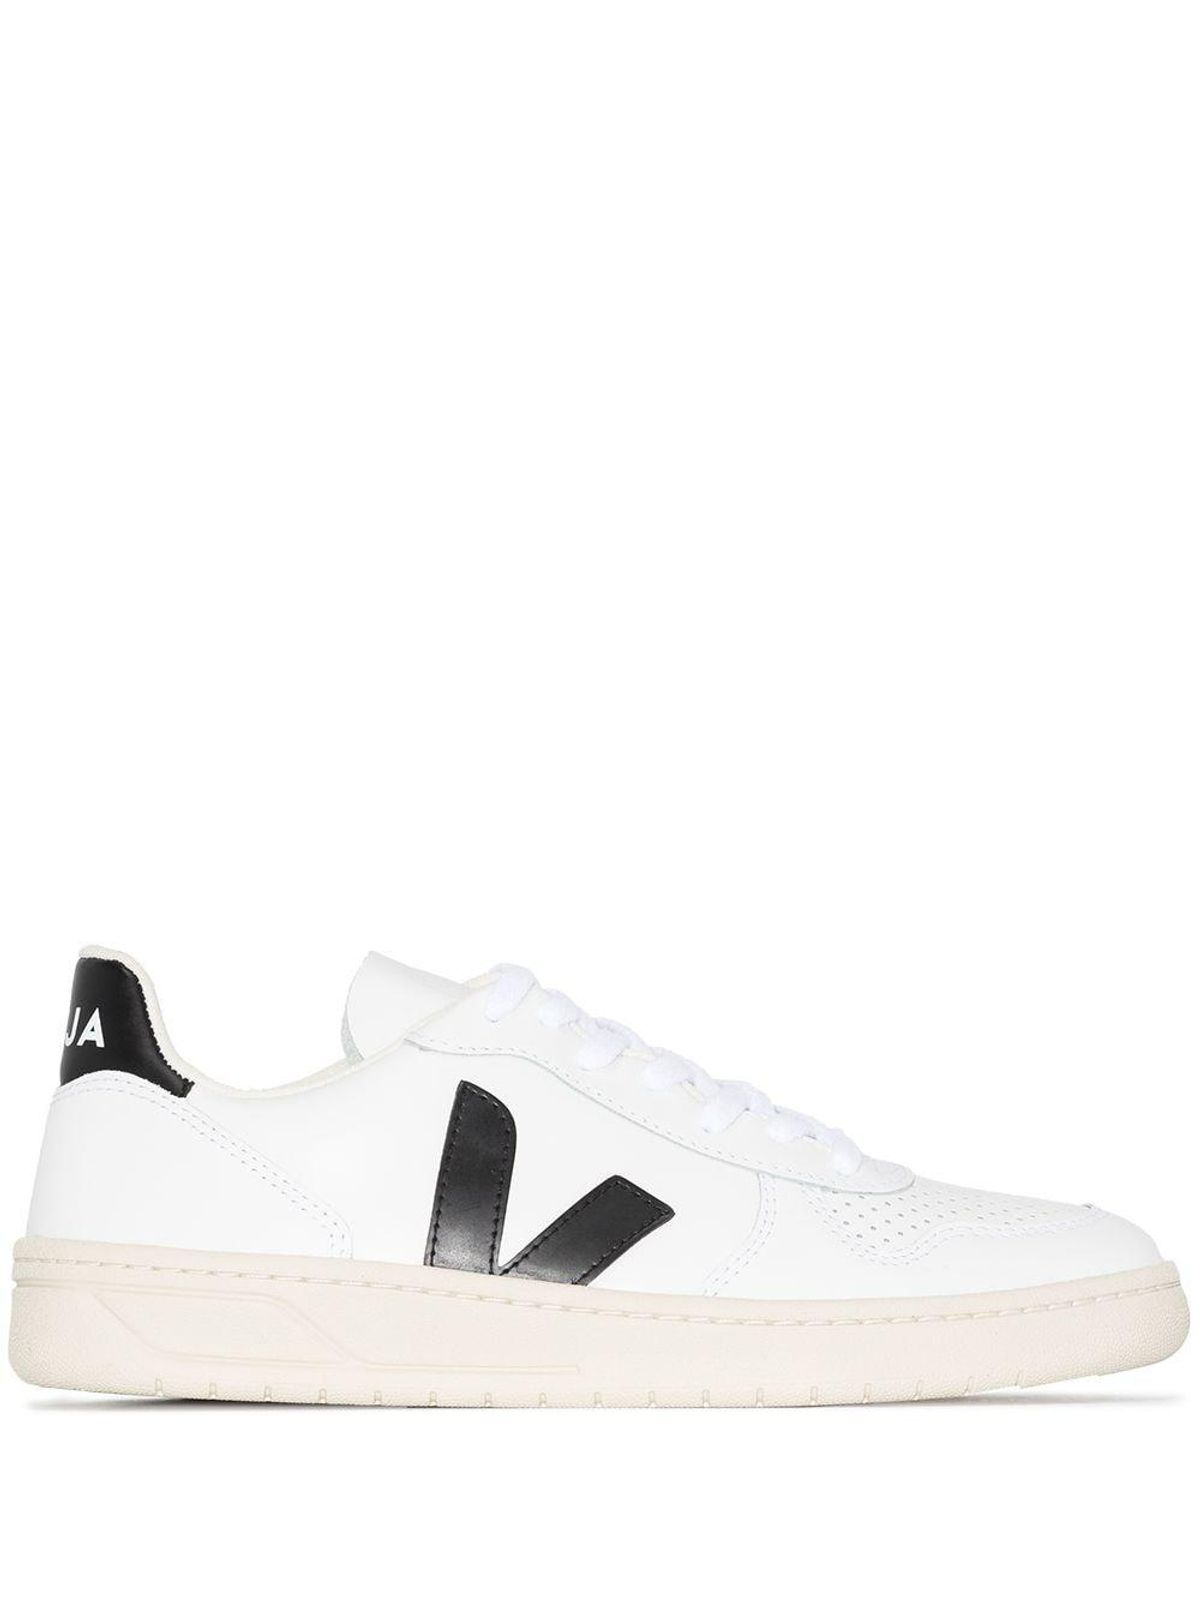 V-10 Leather Low-Top Sneakers